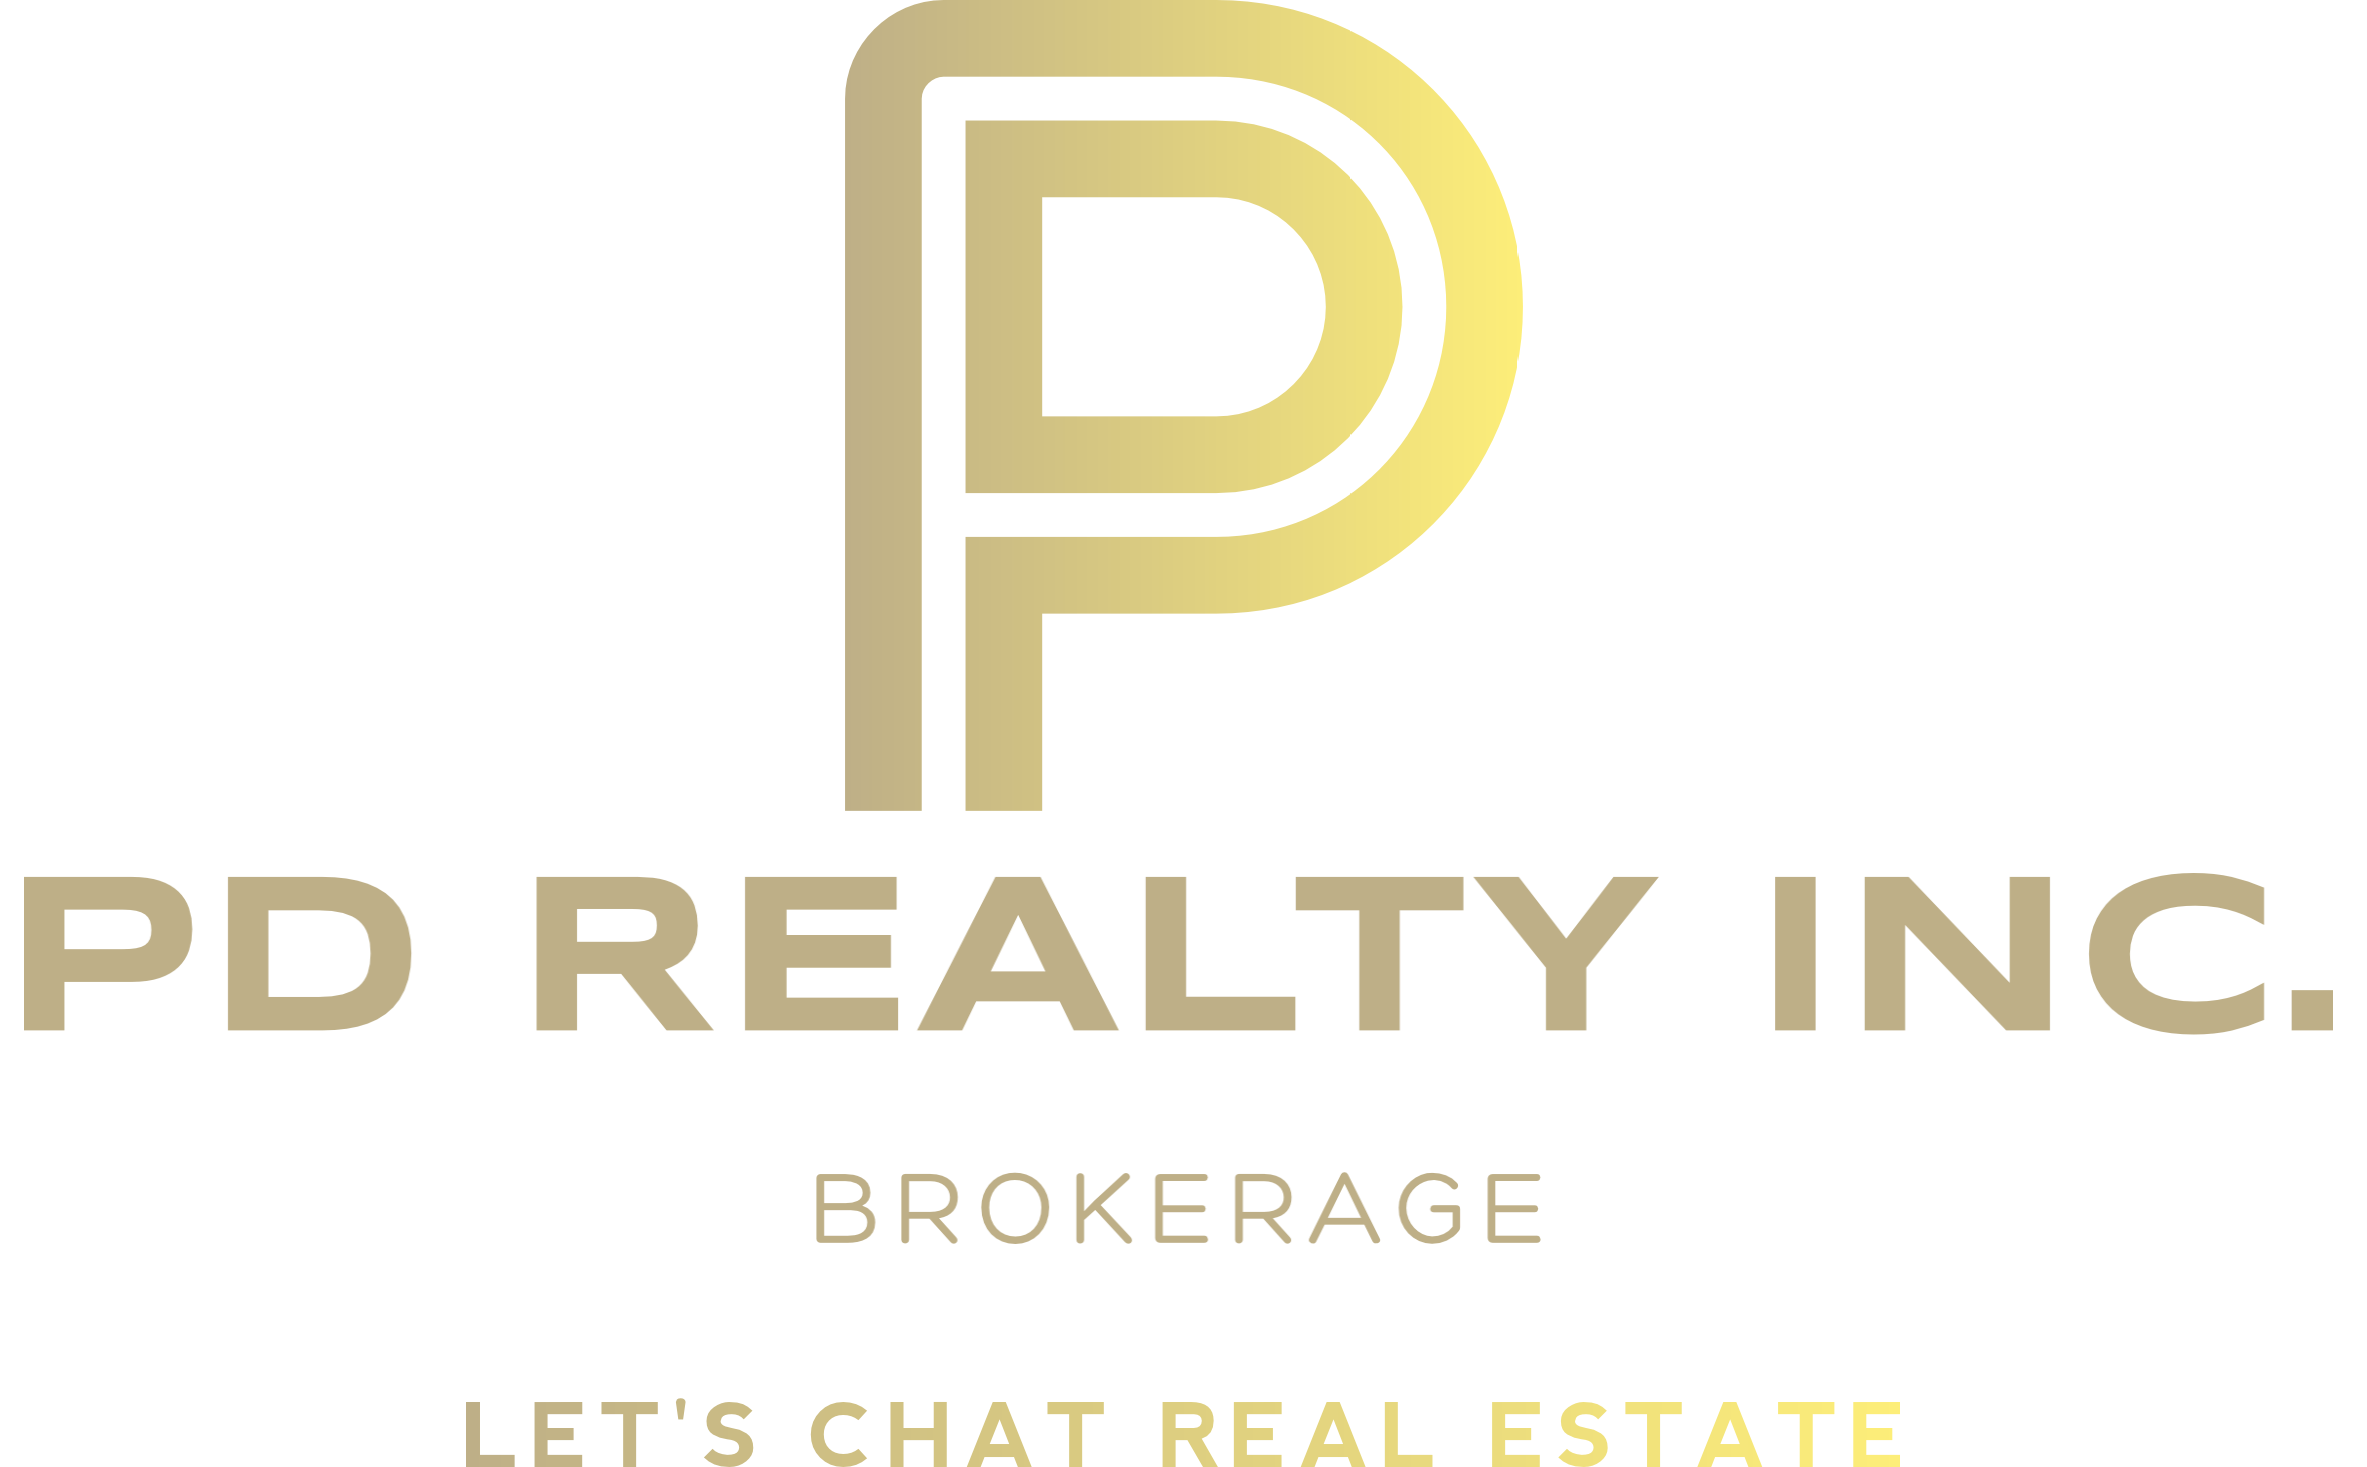 PD REALTY INC.,  Brokerage